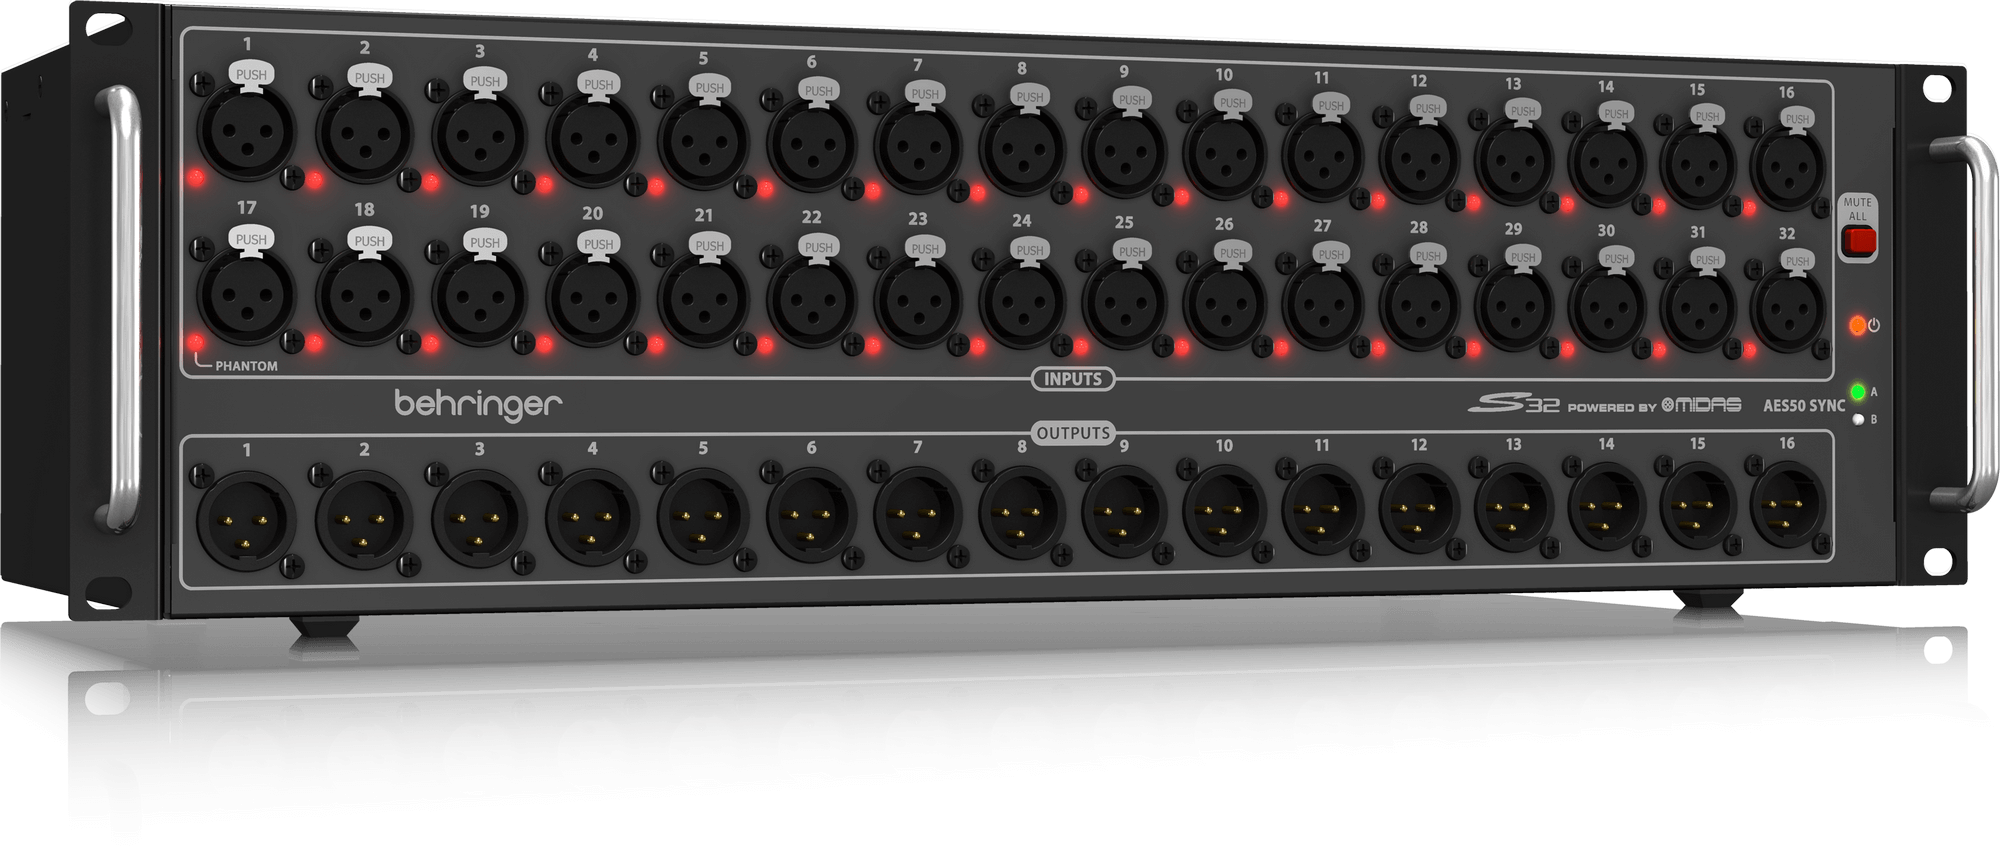 behringer-s32-i-o-box-w-32-remote-controllable-midas-preamps MAIN